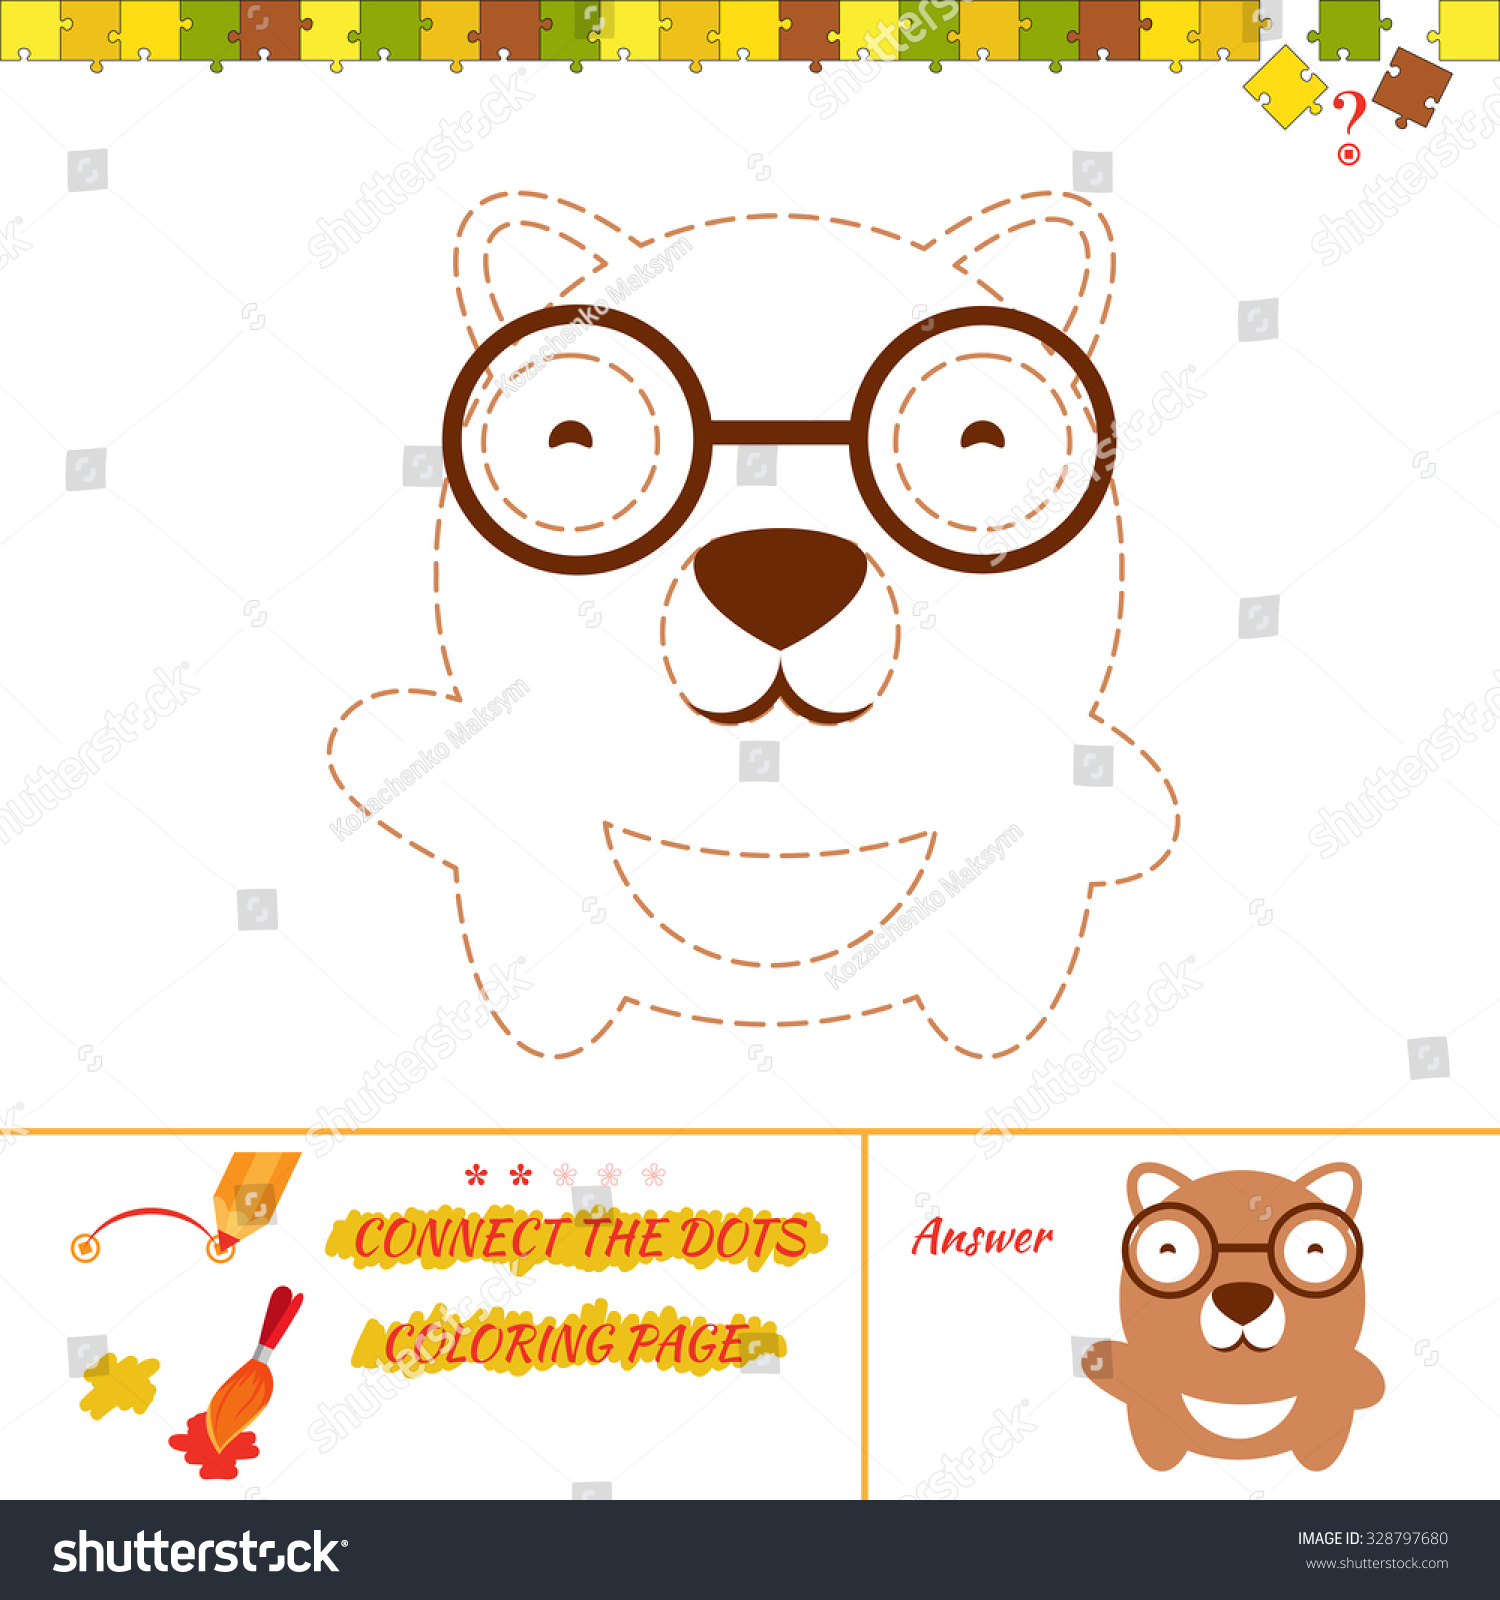 puzzle connect dots picture coloring page stock illustration